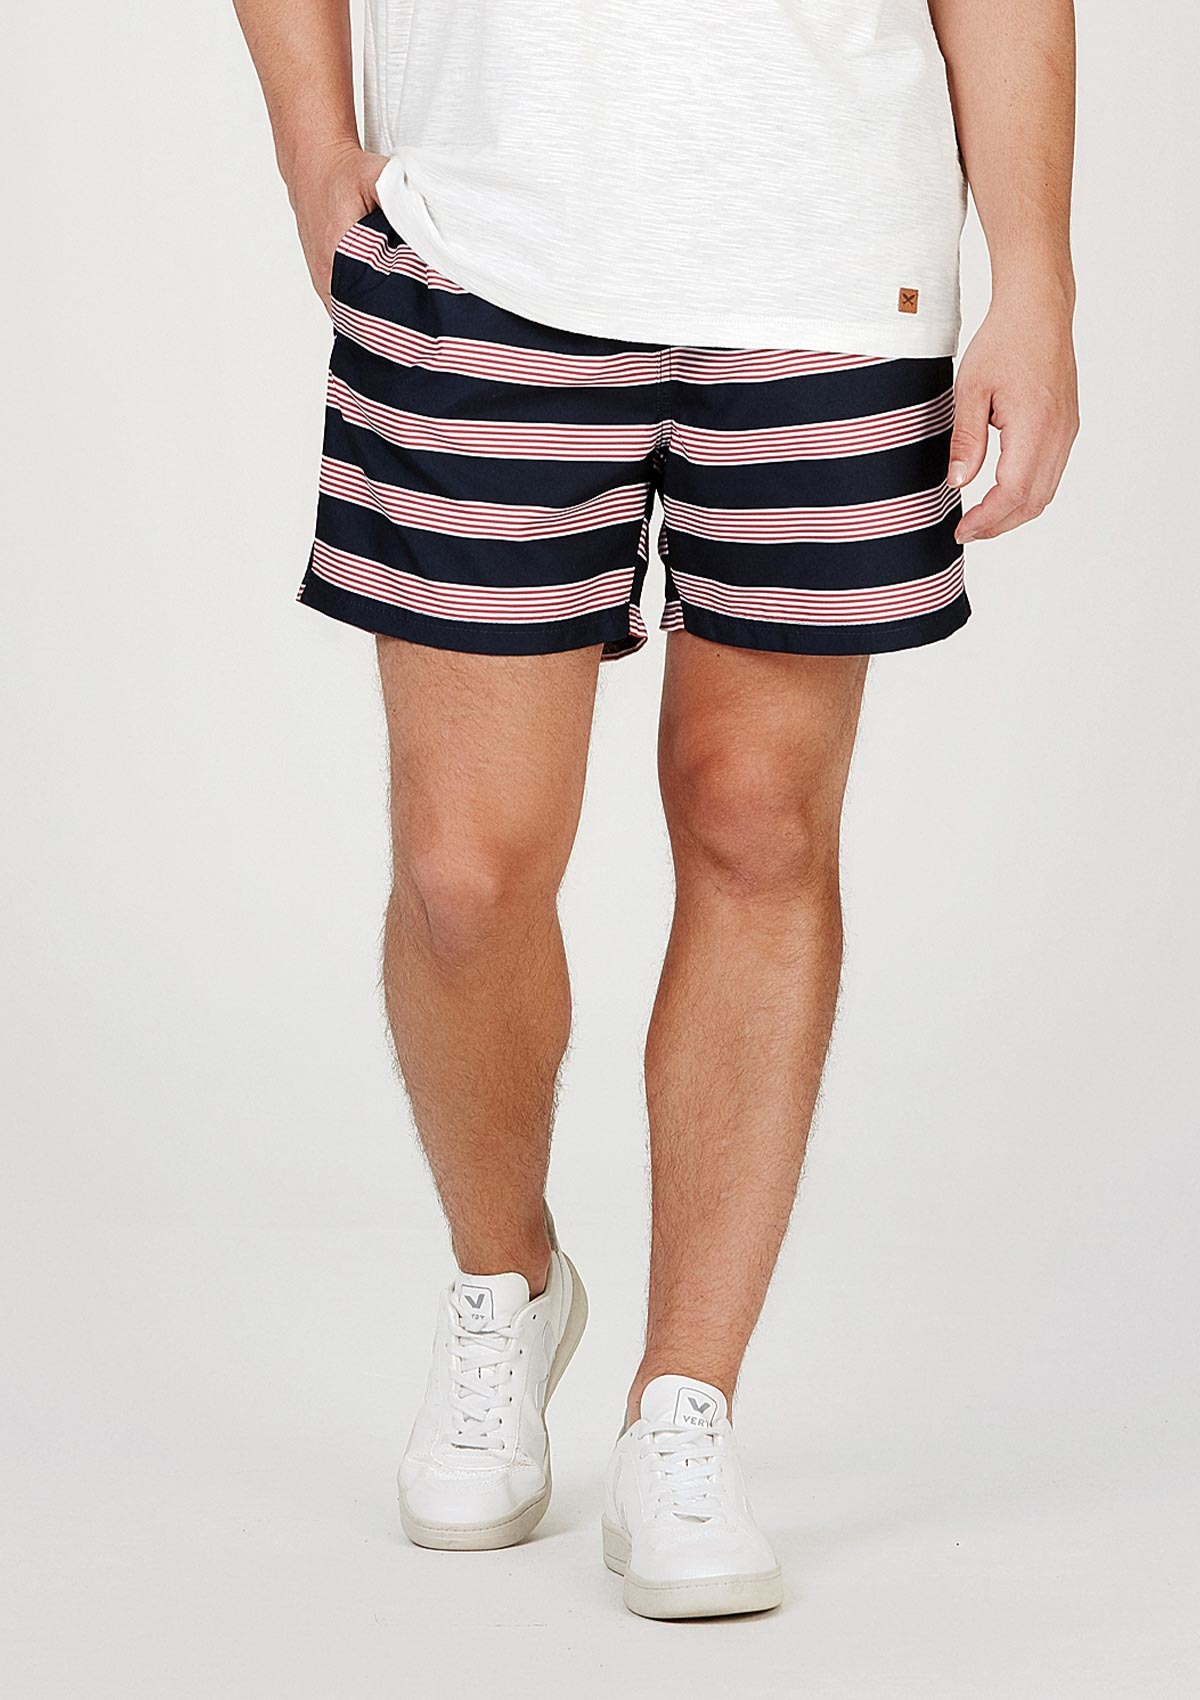 Shorts Praia Masculino Regular Estampado